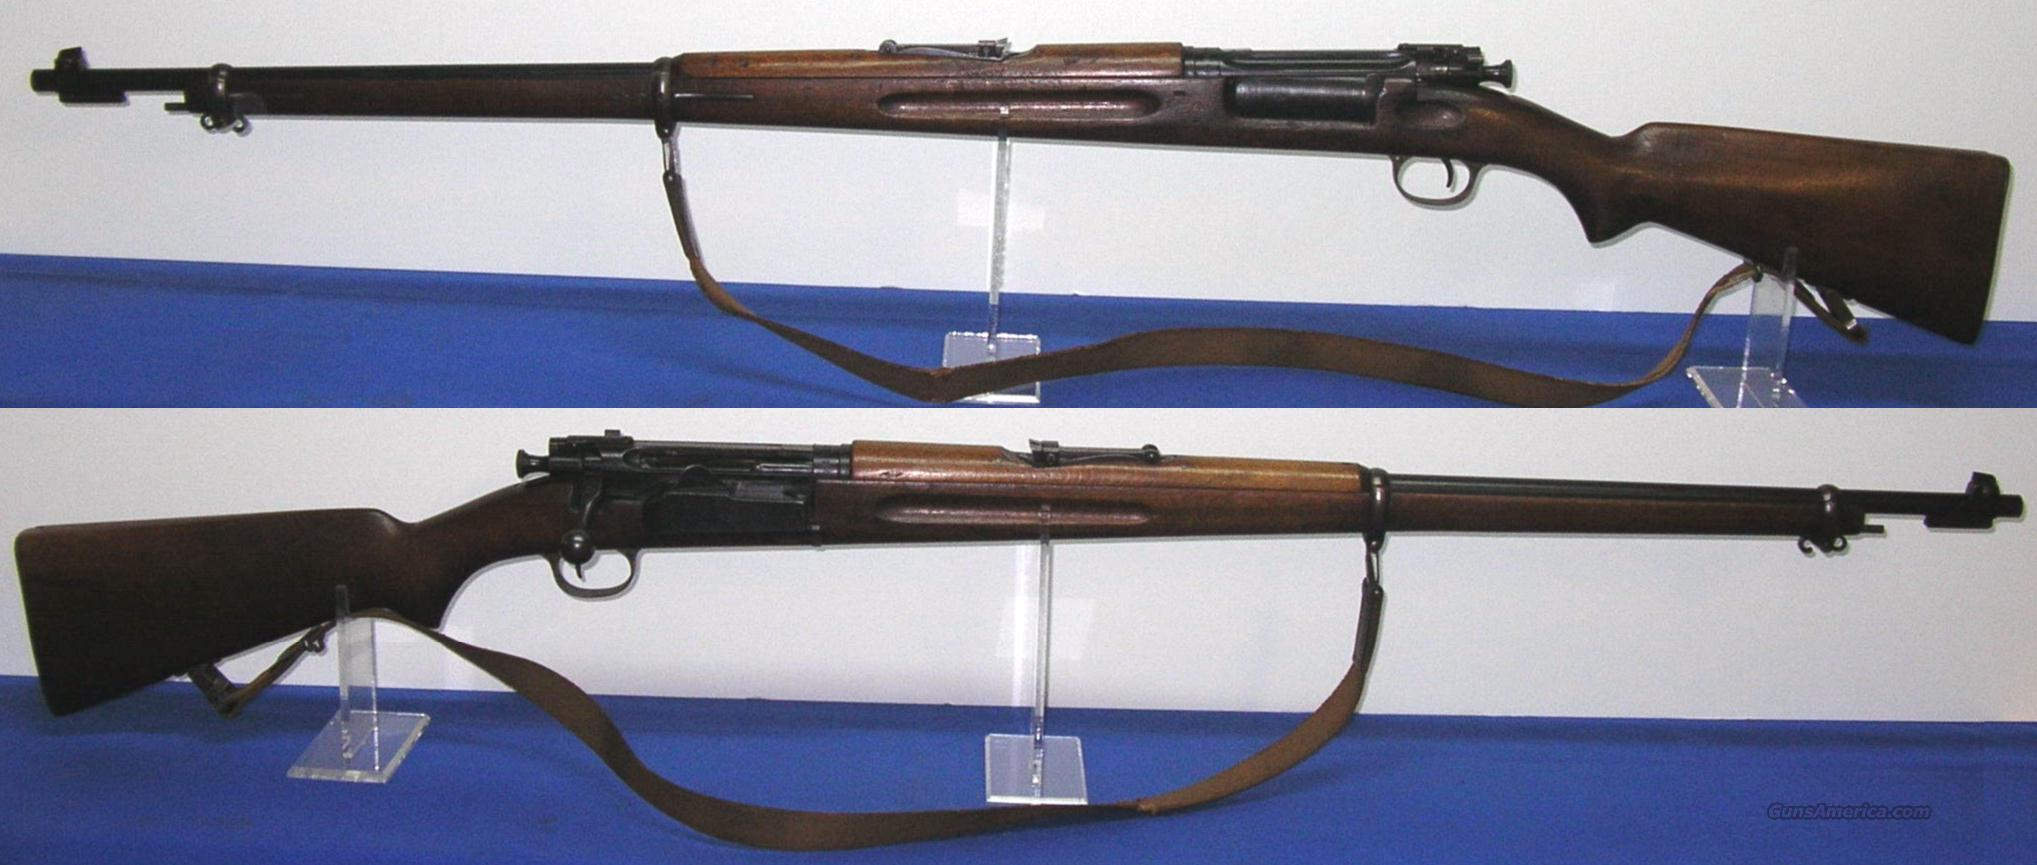 "Norwegian Krag ""Rare"" Nazi Issued 1943-50 Bolt Action Rifle  Guns > Rifles > Military Misc. Rifles Non-US > Other"